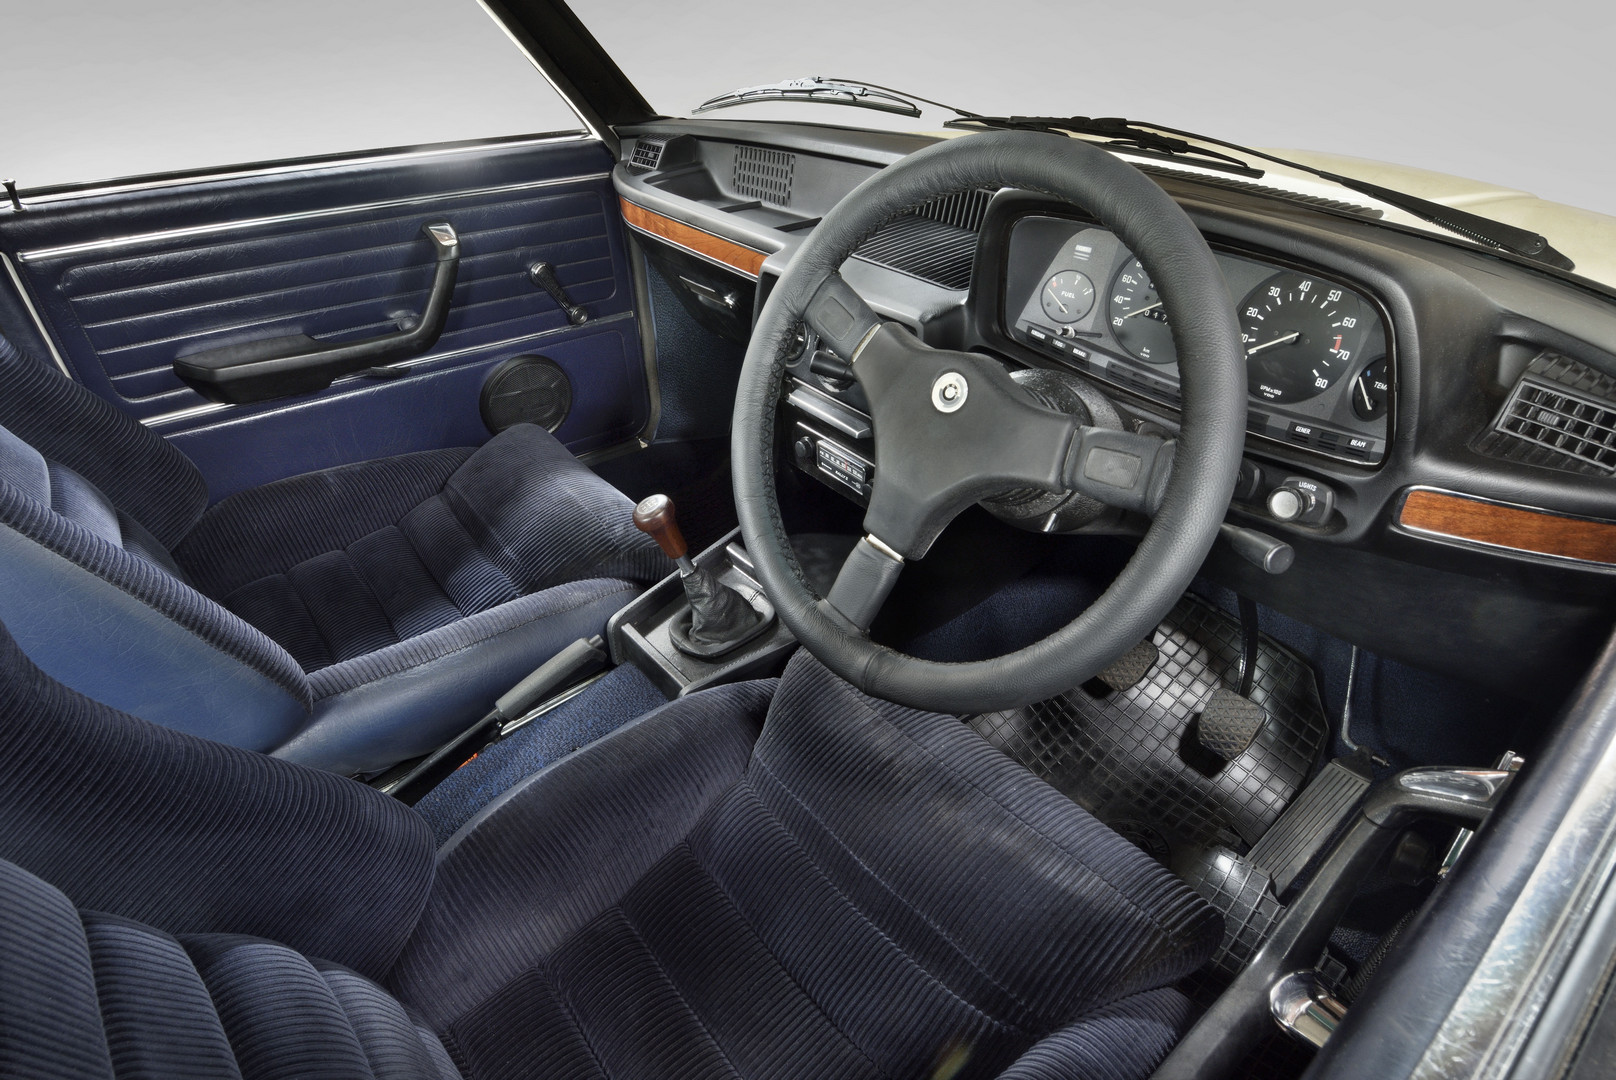 BMW 530 MLE Interior